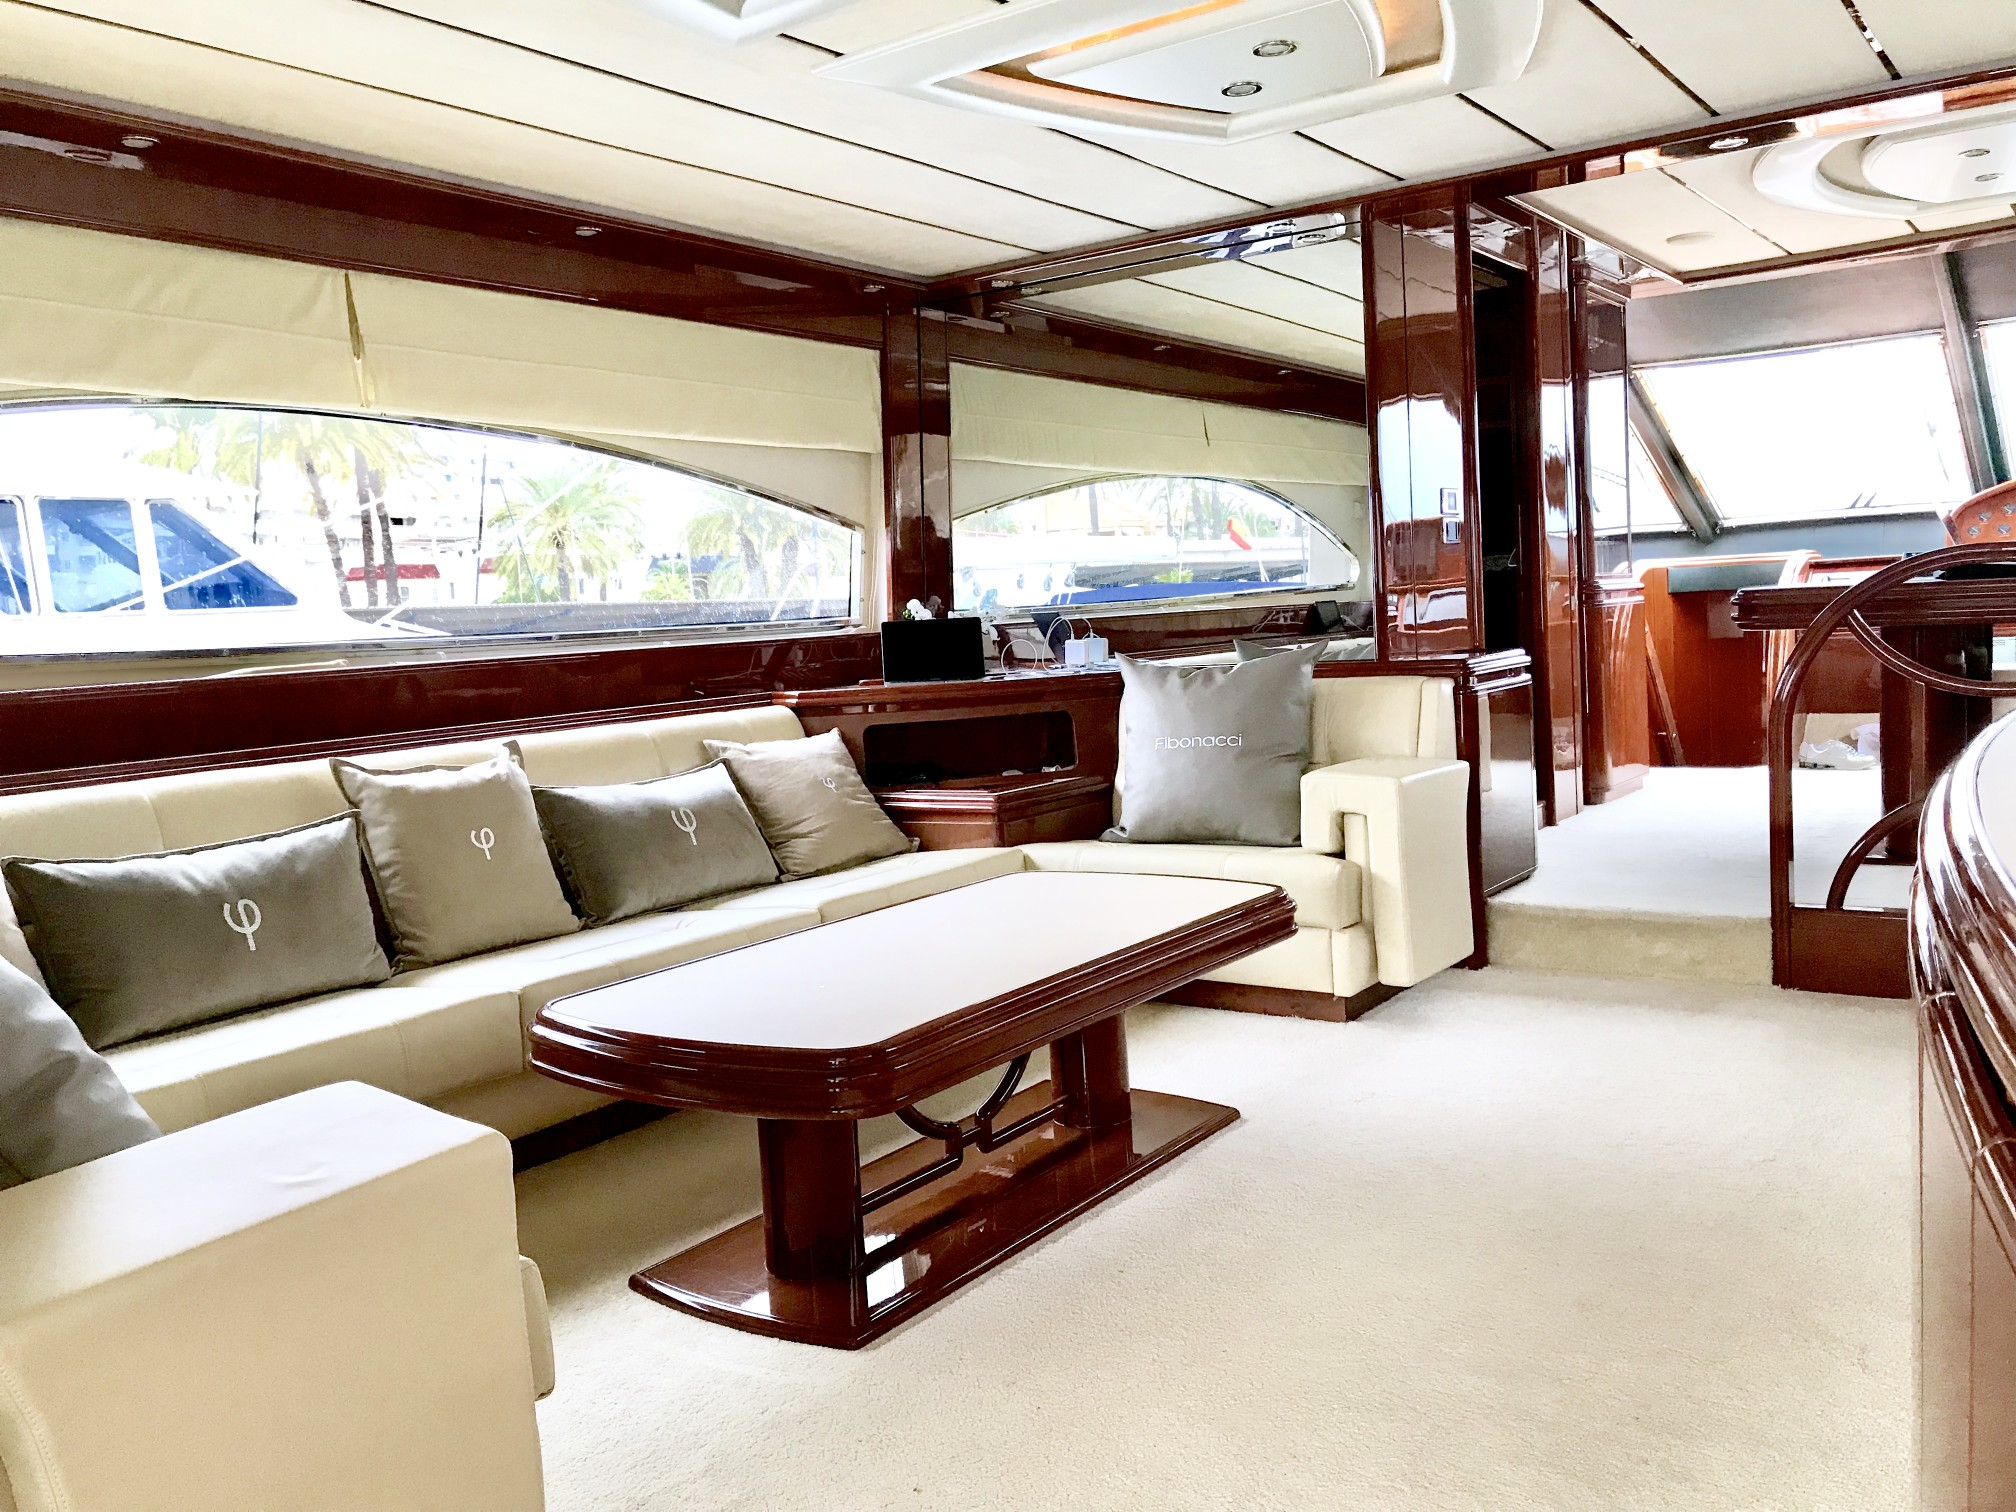 Rental yacht Astondoa salon